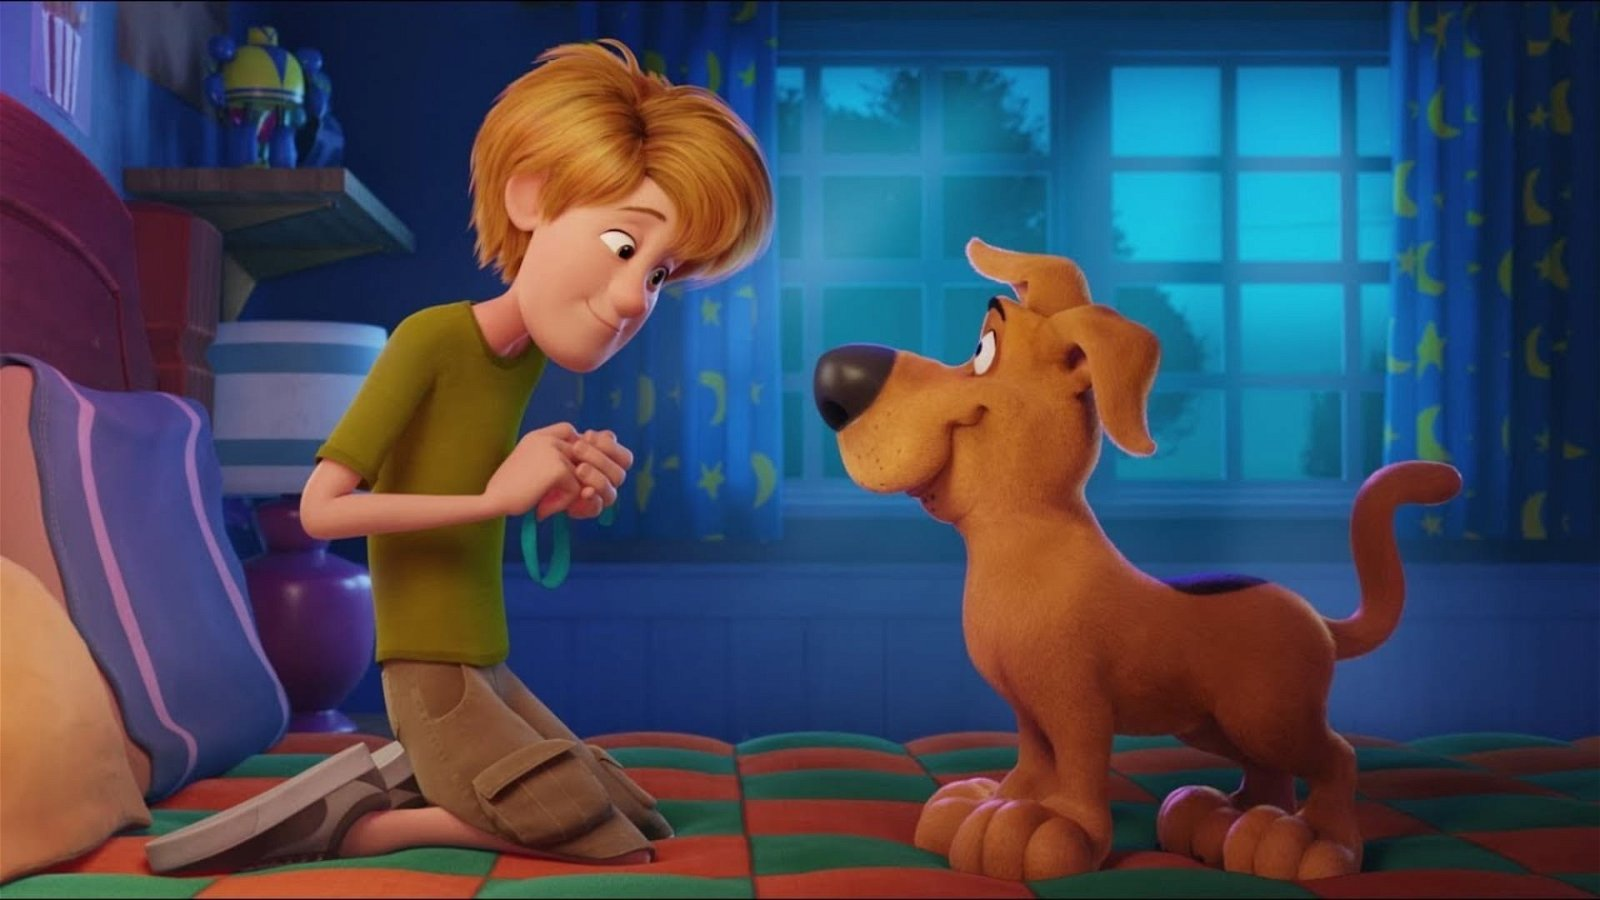 Premiere Trailer for Scoob! Released, Coming to Theaters in 2020 1